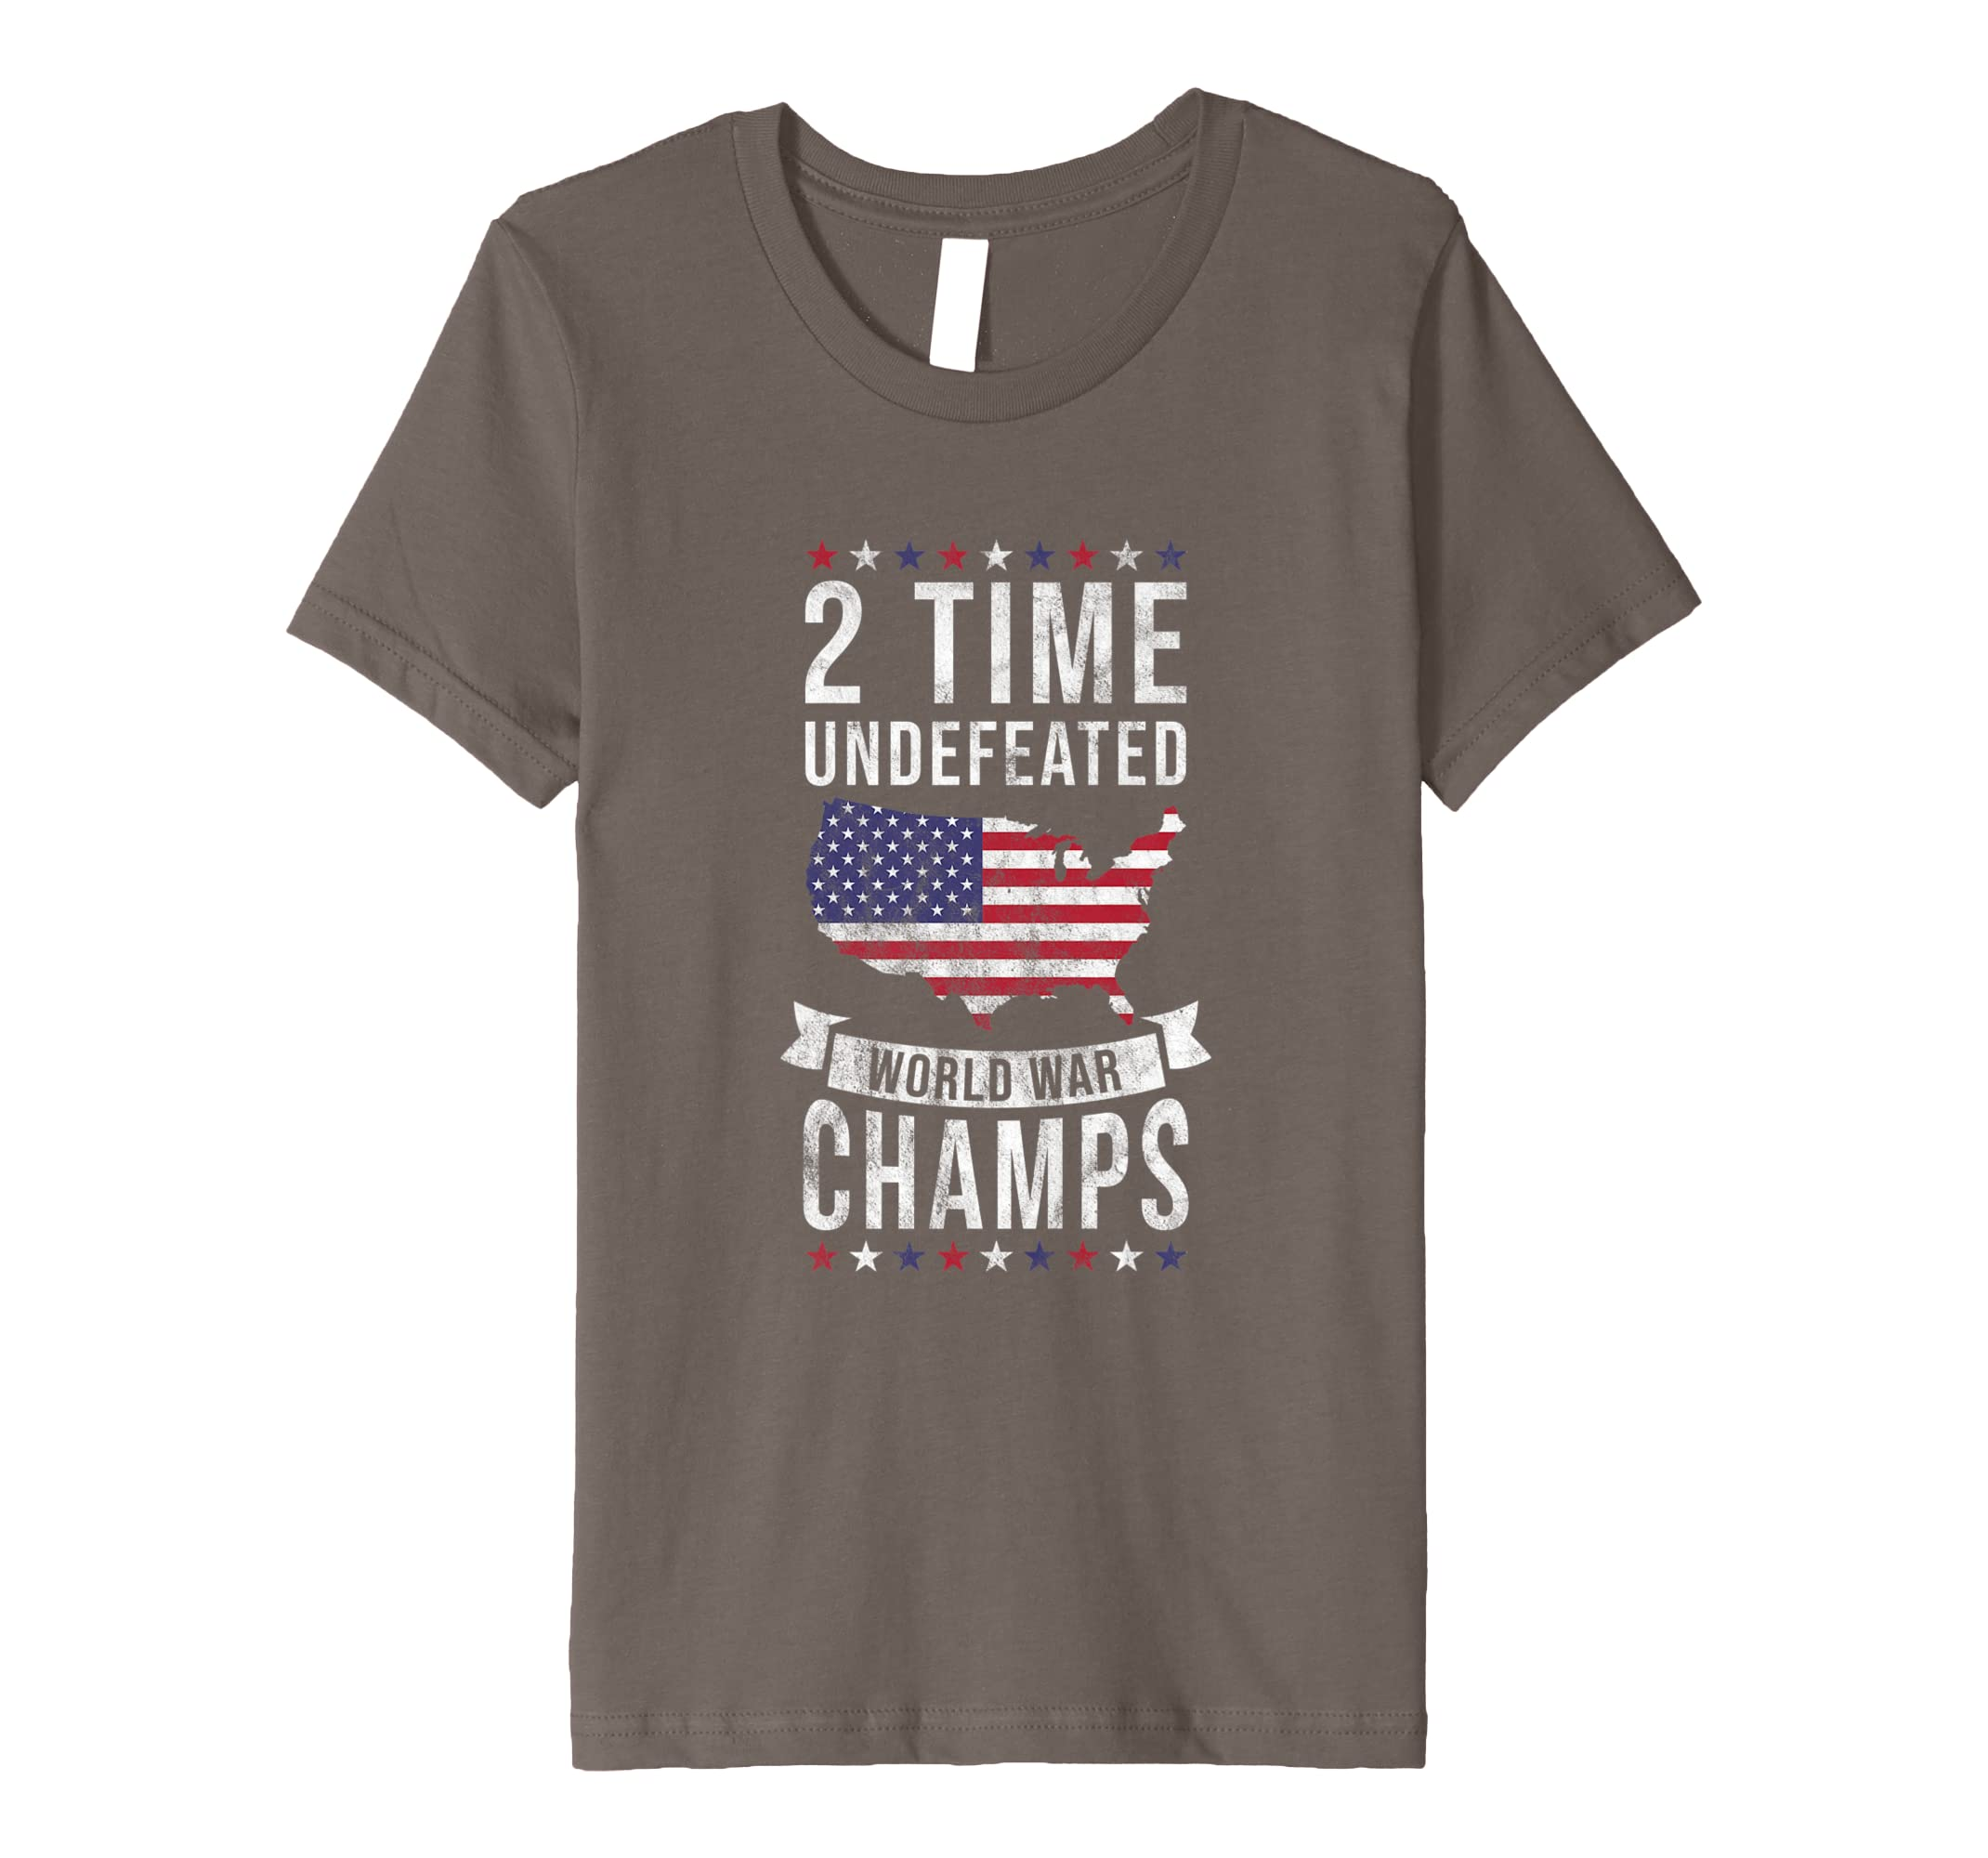 65fa35d9 Amazon.com: Independence Day Shirt 2 Time Undefeated World War Champ Tee:  Clothing